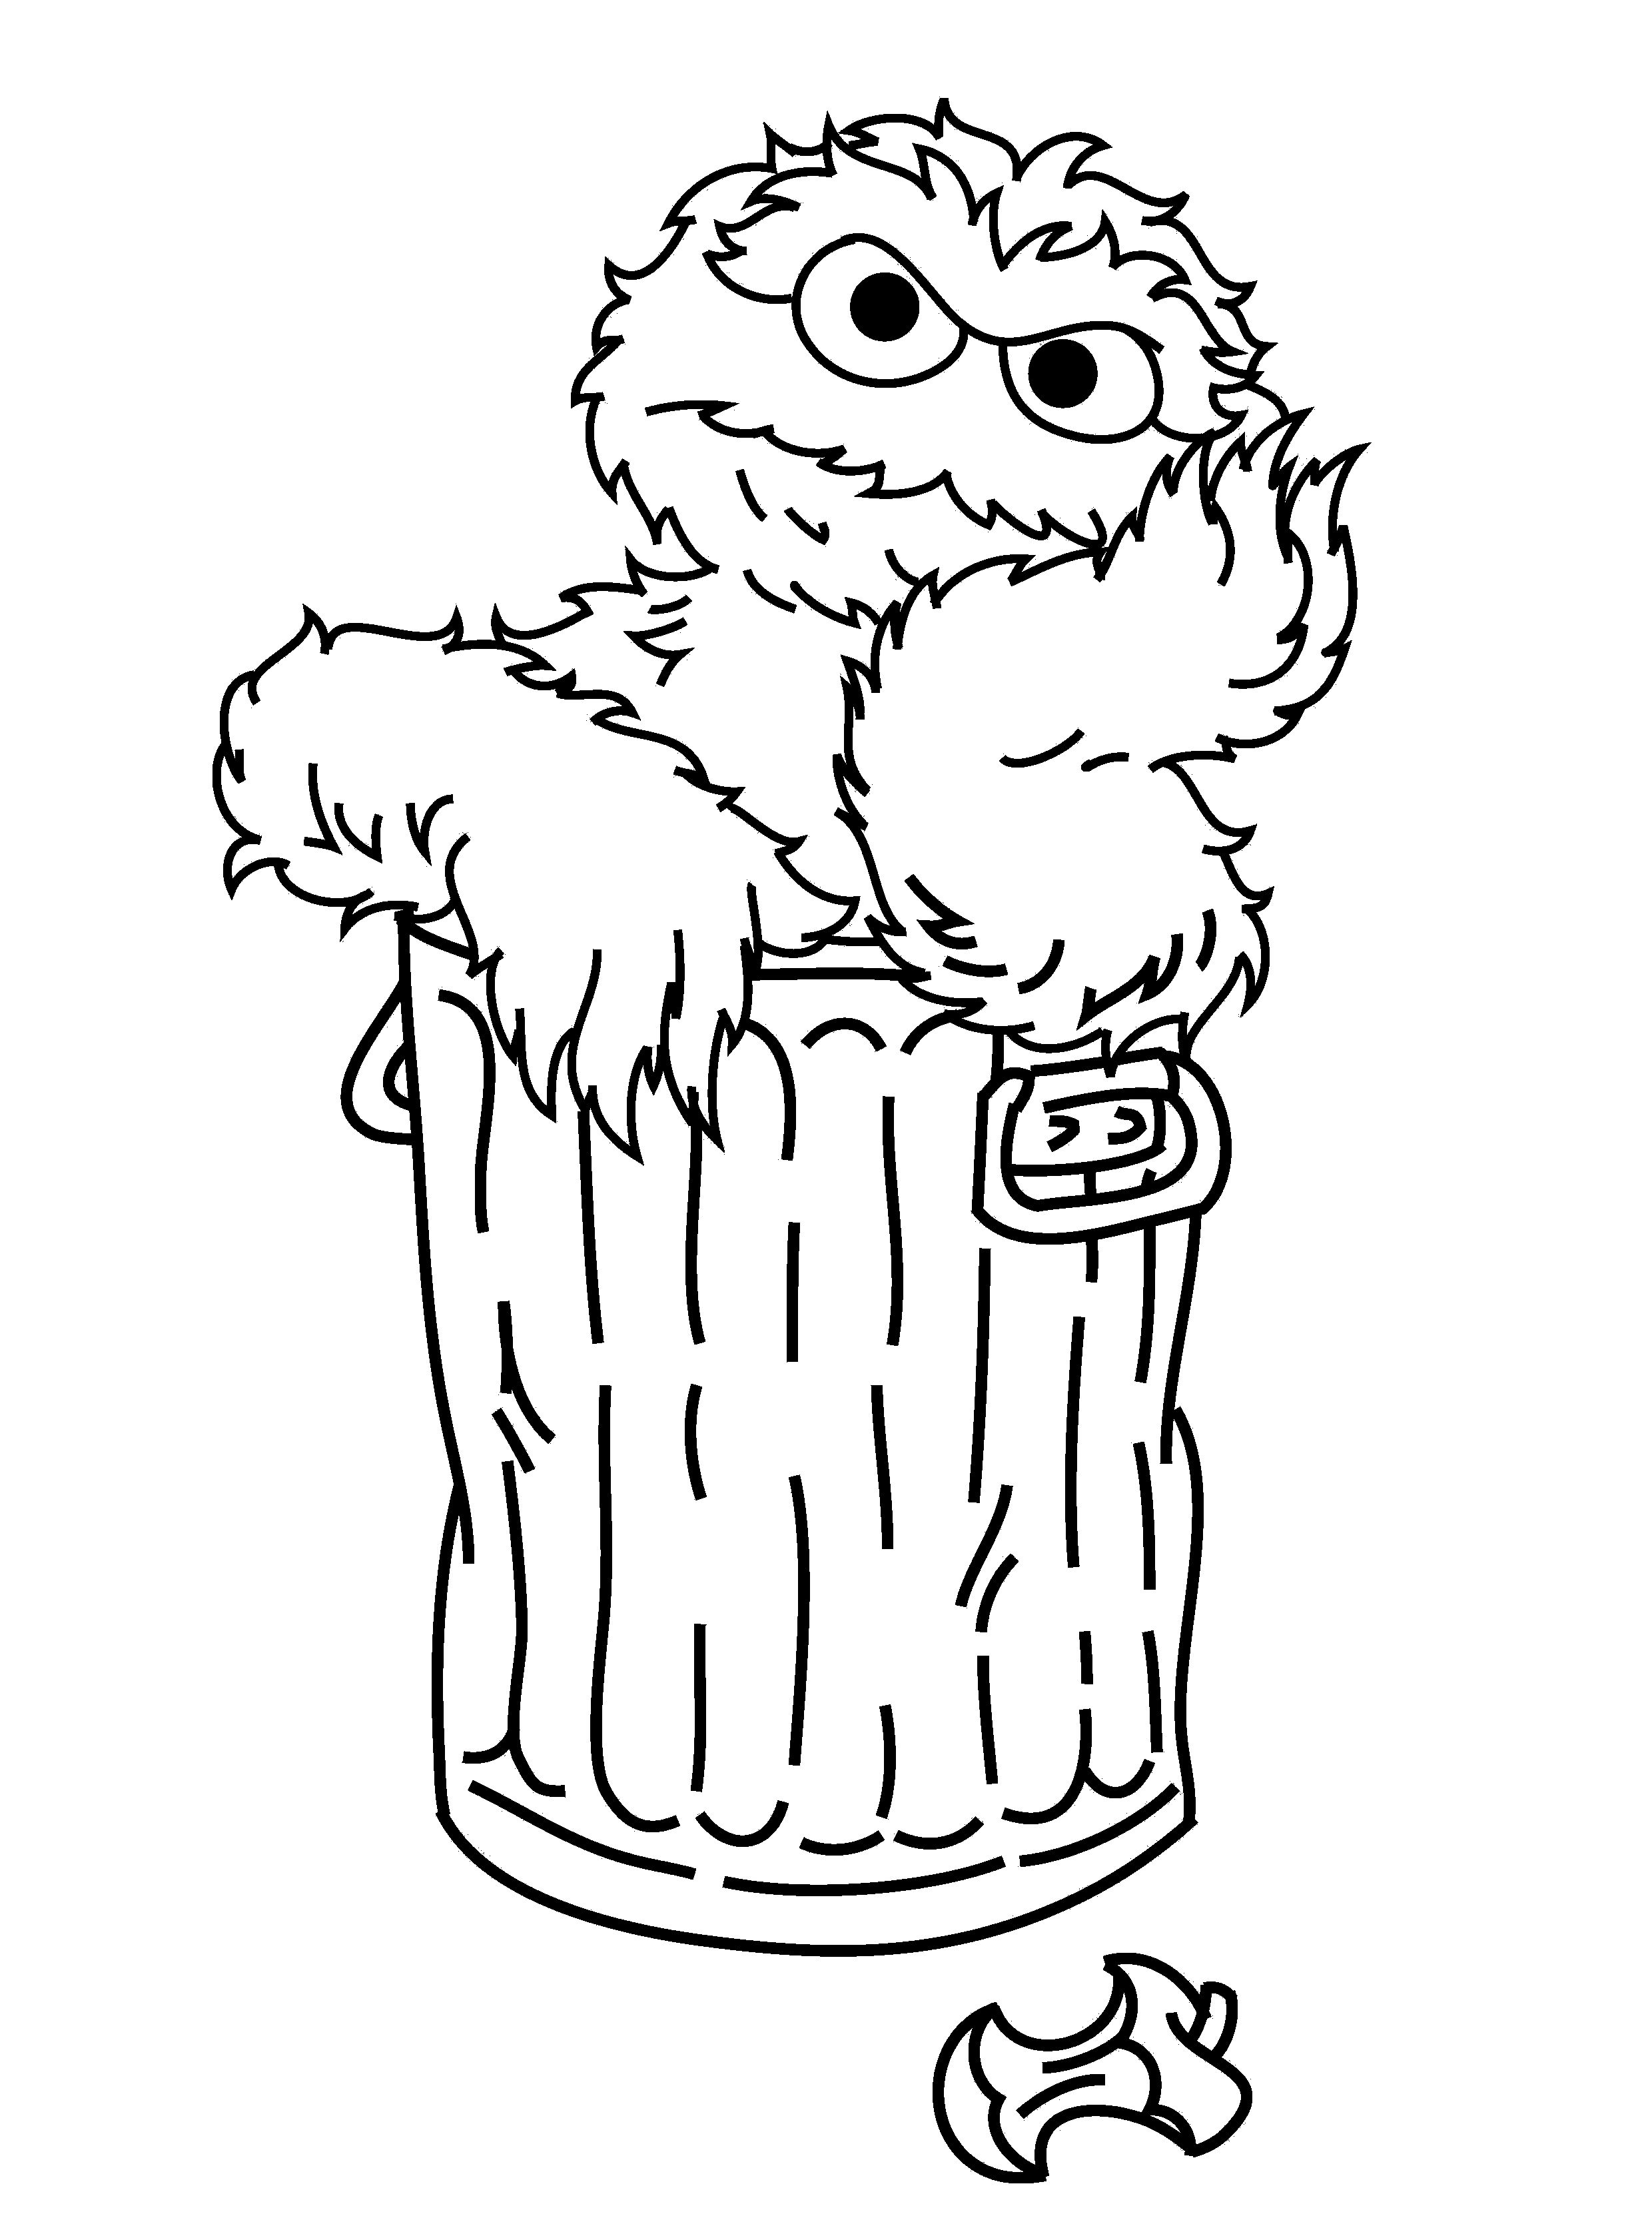 drawing of oscar grouch Yahoo Image Search Results